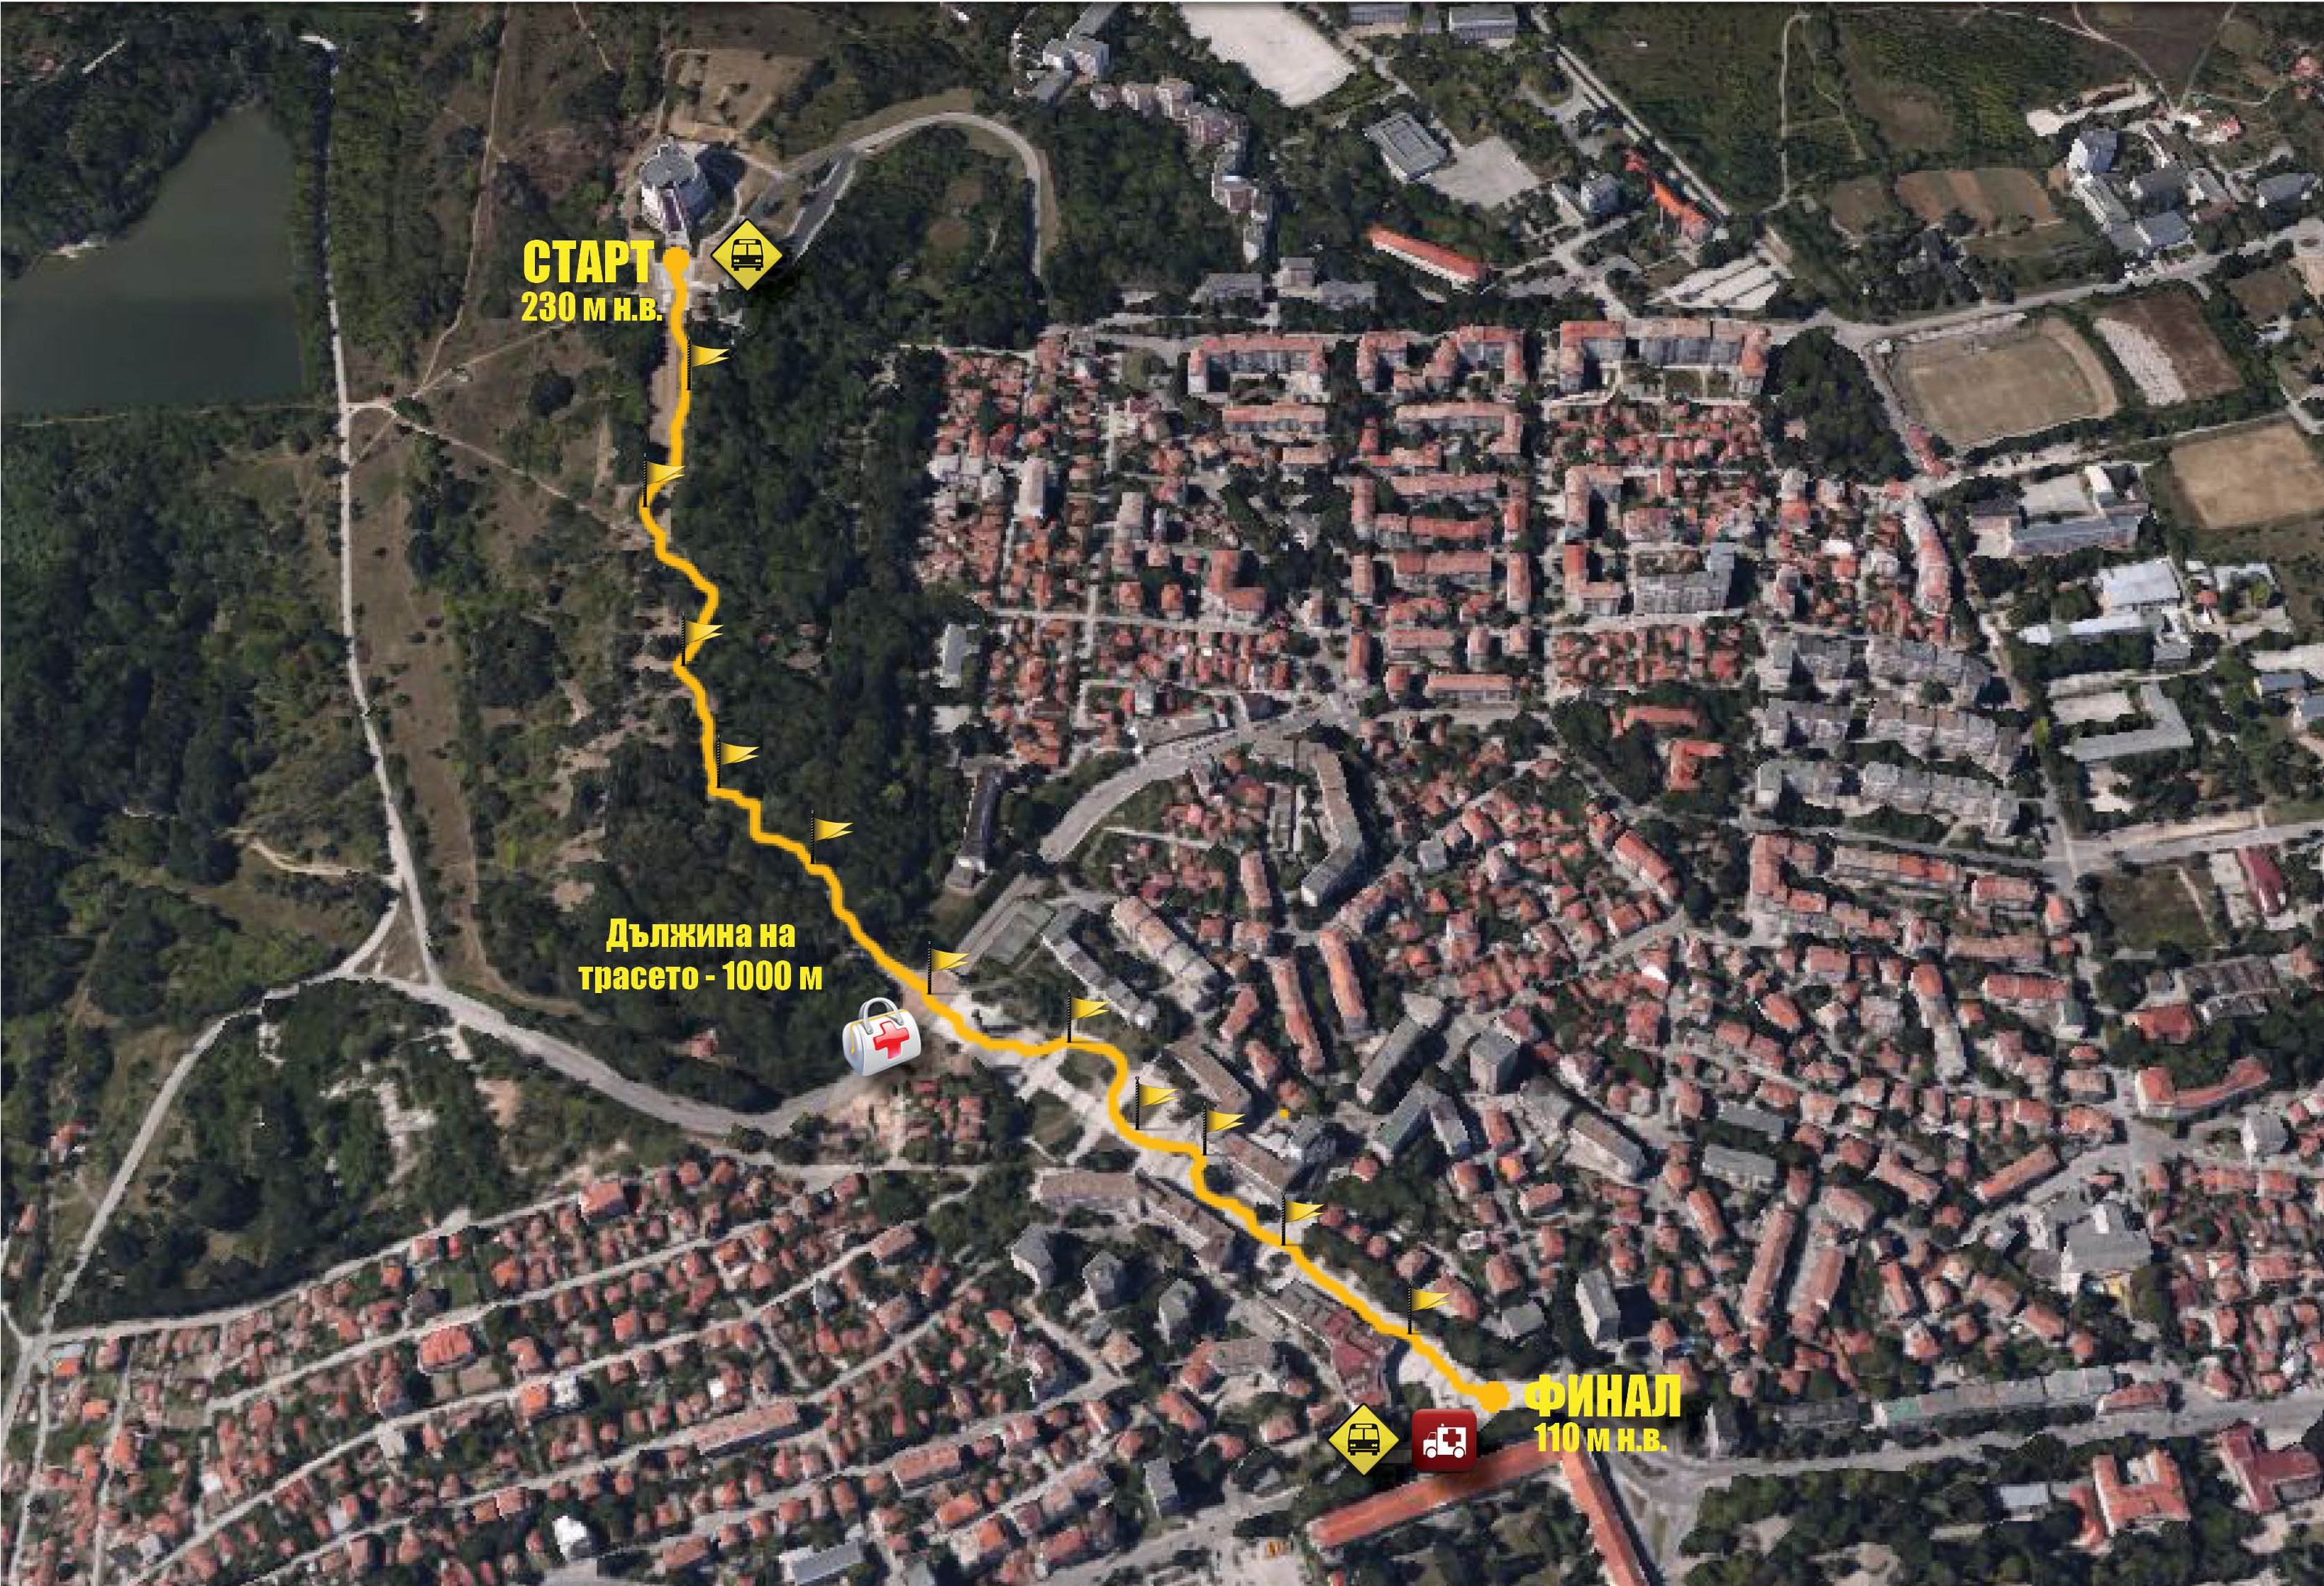 PLEVEN_RACE_MAP_edited